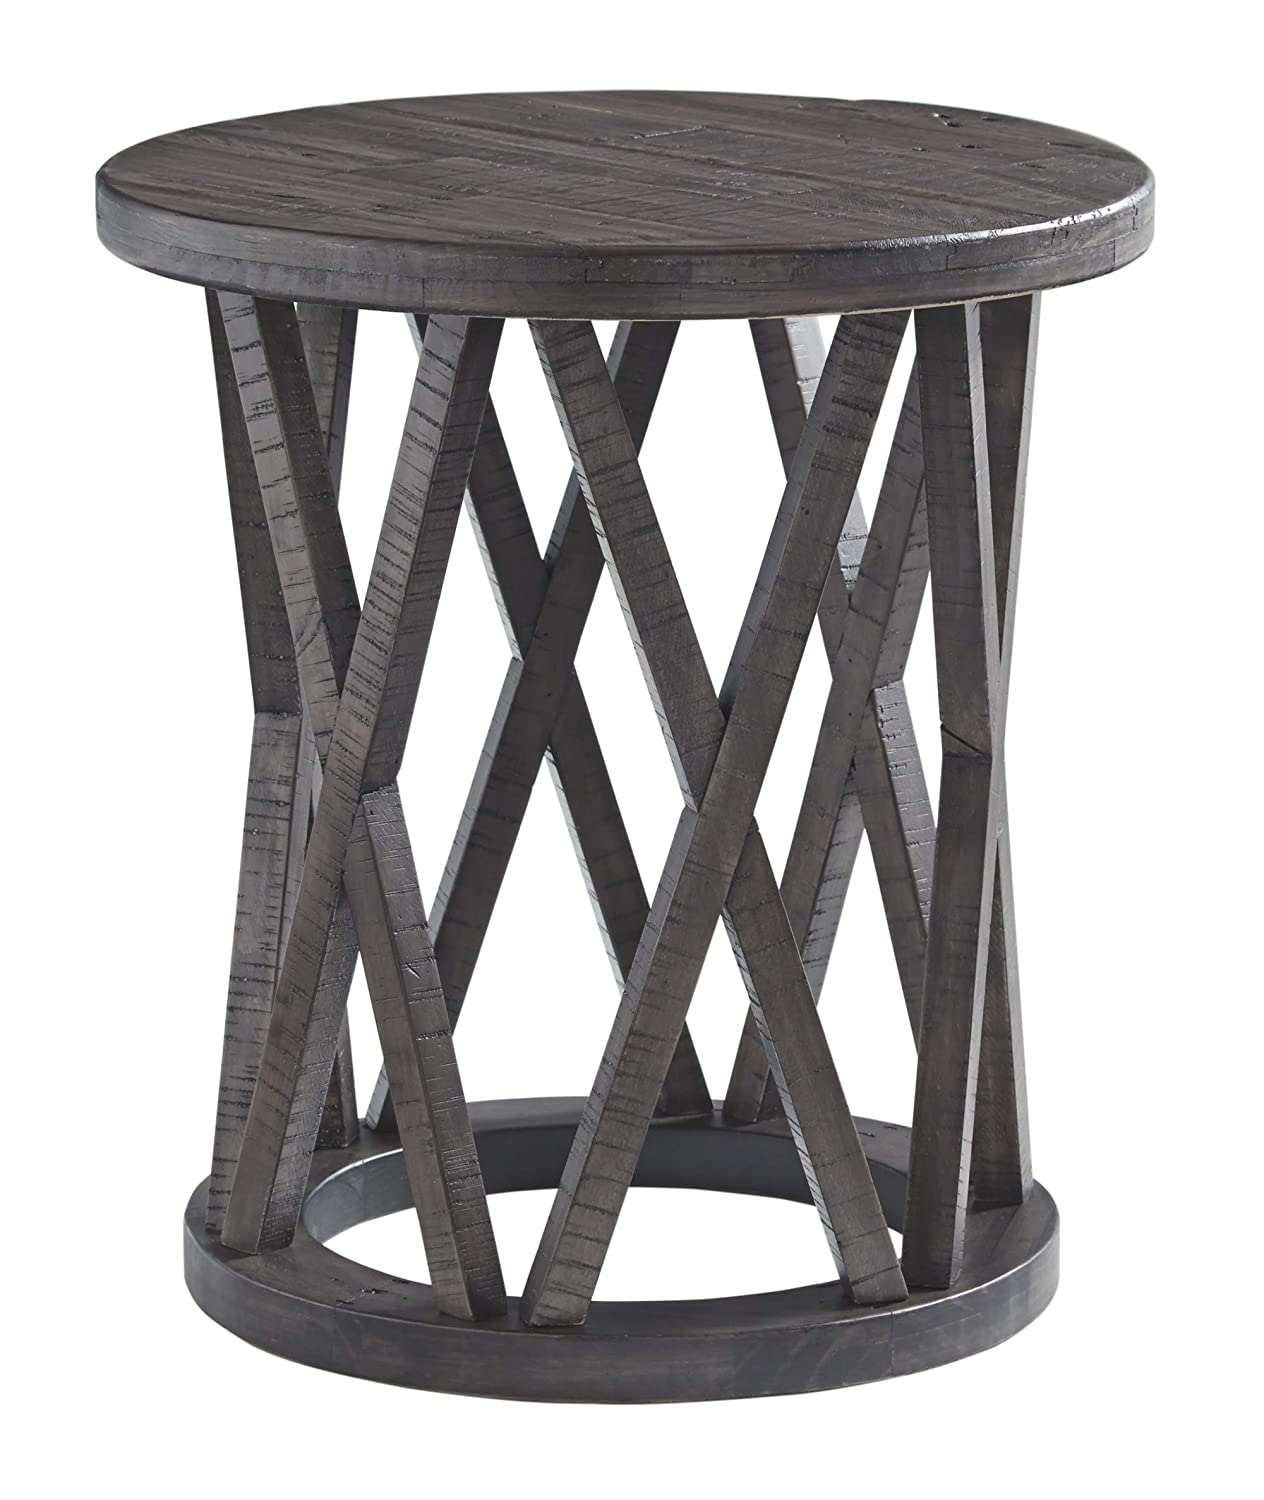 Signature Design by Ashley Sharzane Round End Table Grayish Brown